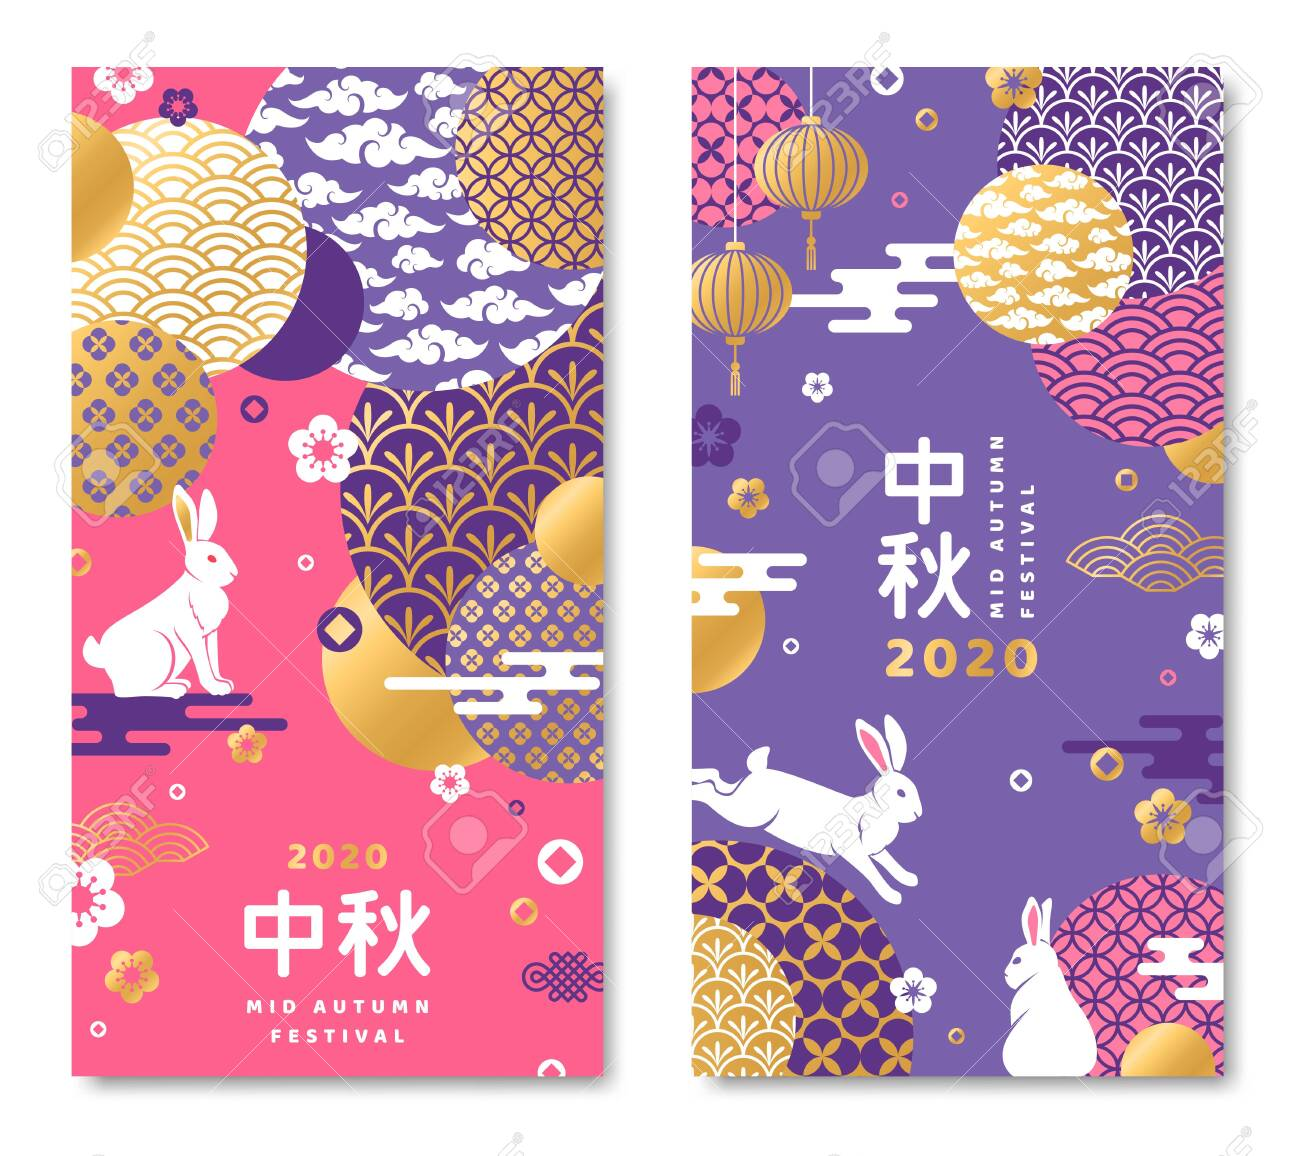 Chuseok festival two sides poster with moon, rabbits and flowers. Hieroglyph translation is Mid autumn. Vector illustration. - 129398294